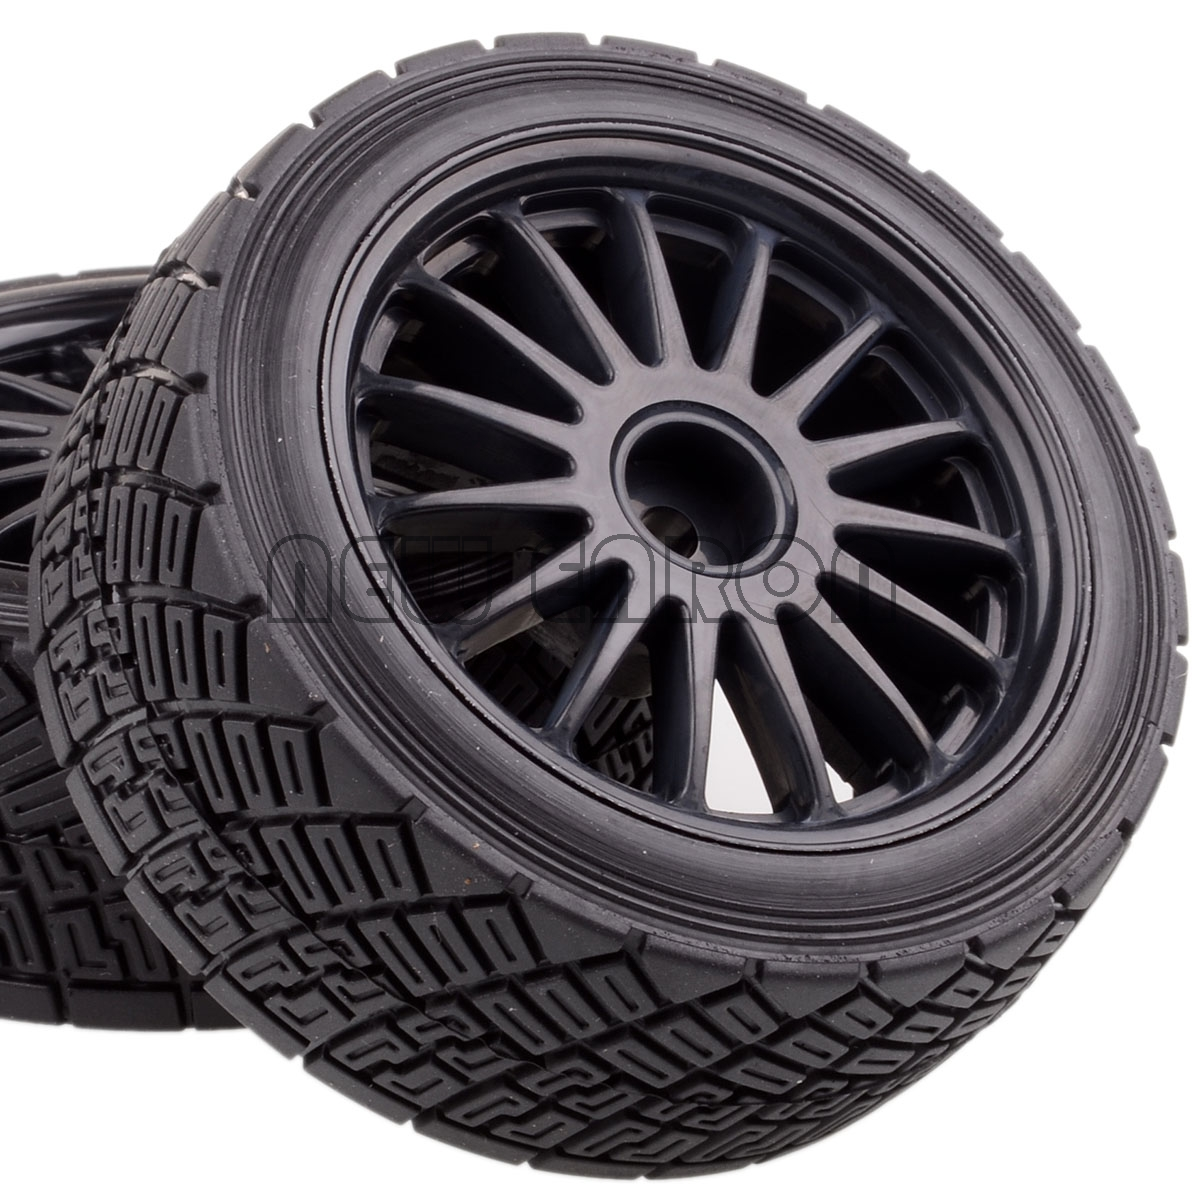 """Image 3 - NEW ENRON RC CAR PART RC 1/10 RC TIRES 4PCS 2.2"""" WHEEL Rim & Tires Tyre Fit 1/10 HPI WR8 Flux Rally 3.0 110697 94177-in Parts & Accessories from Toys & Hobbies"""